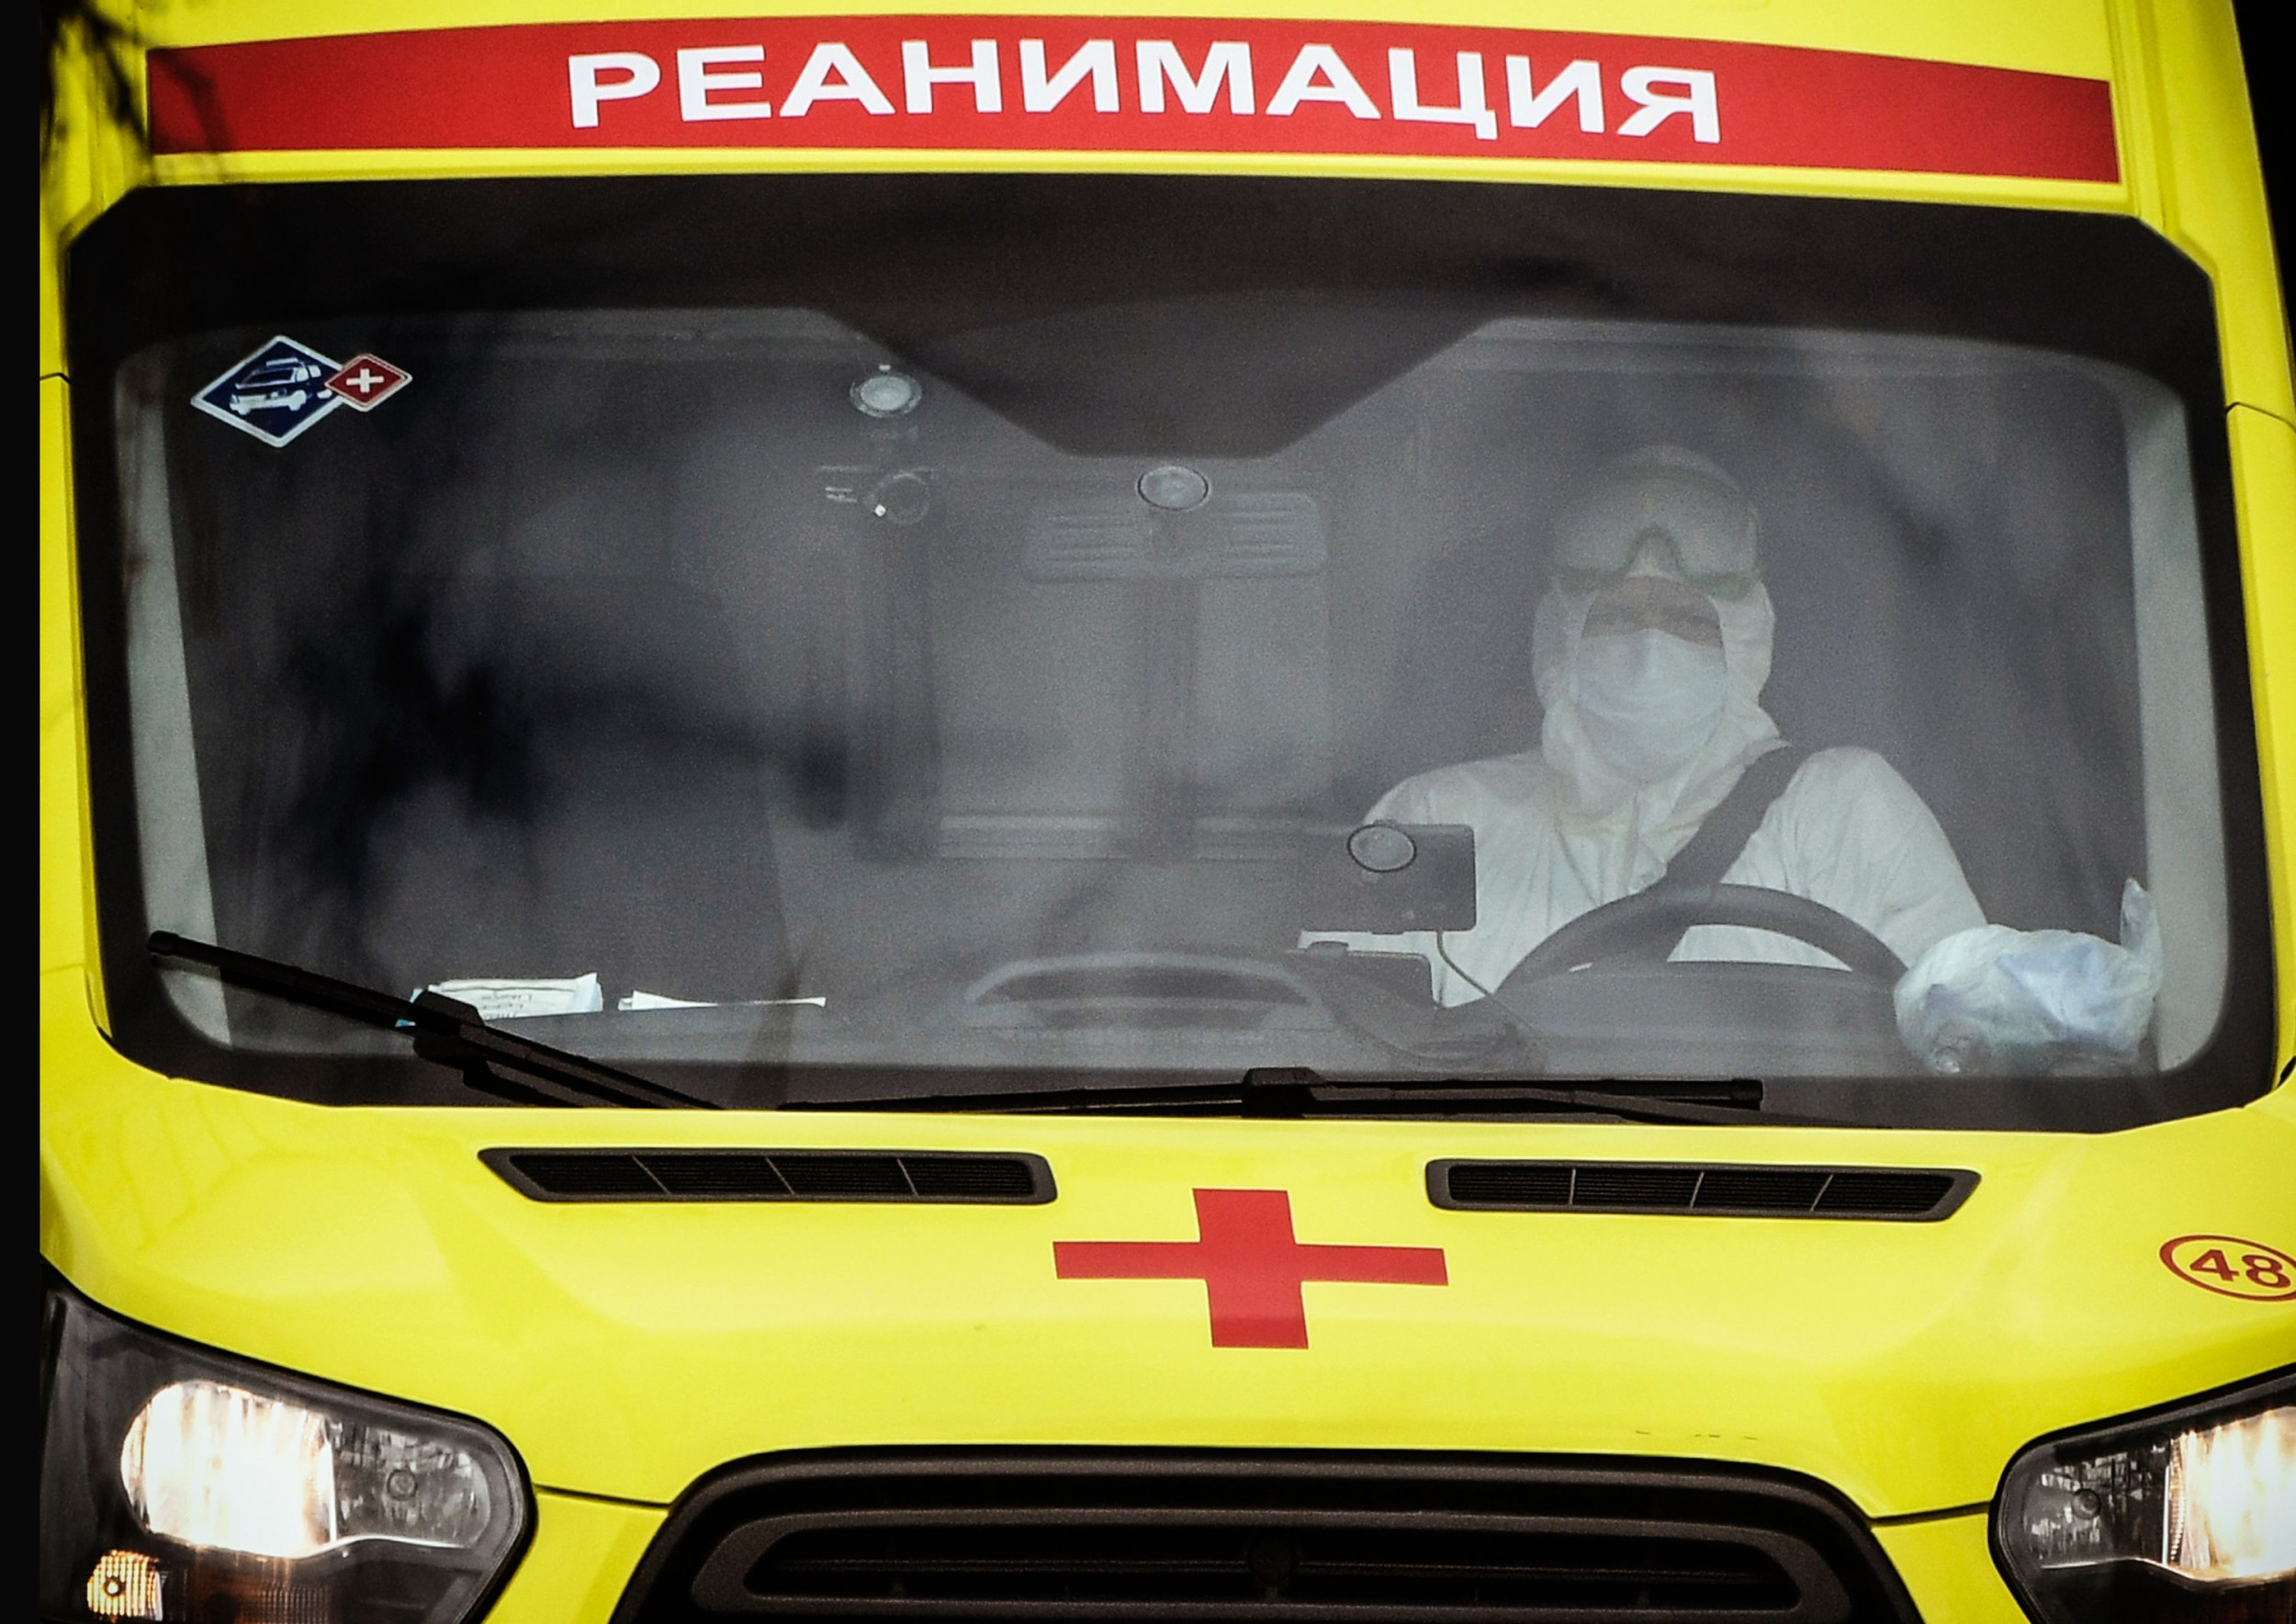 Putin's response to Russia's coronavirus crisis angers medical workers on frontline